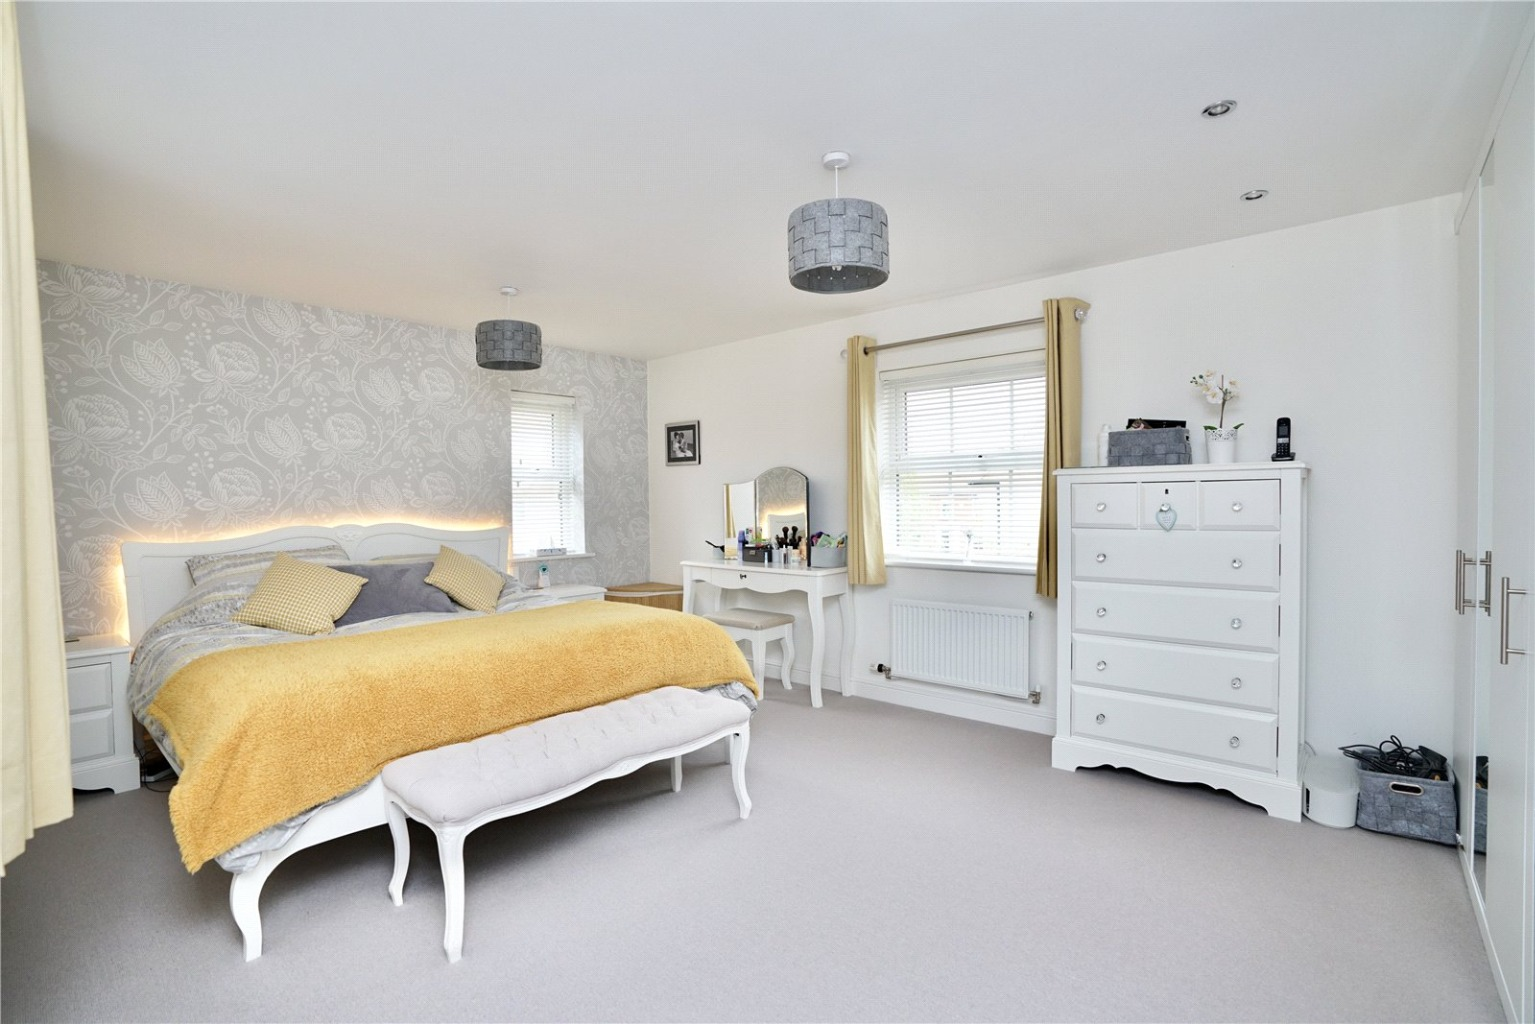 4 bed detached house for sale in Lannesbury Crescent, St. Neots  - Property Image 10